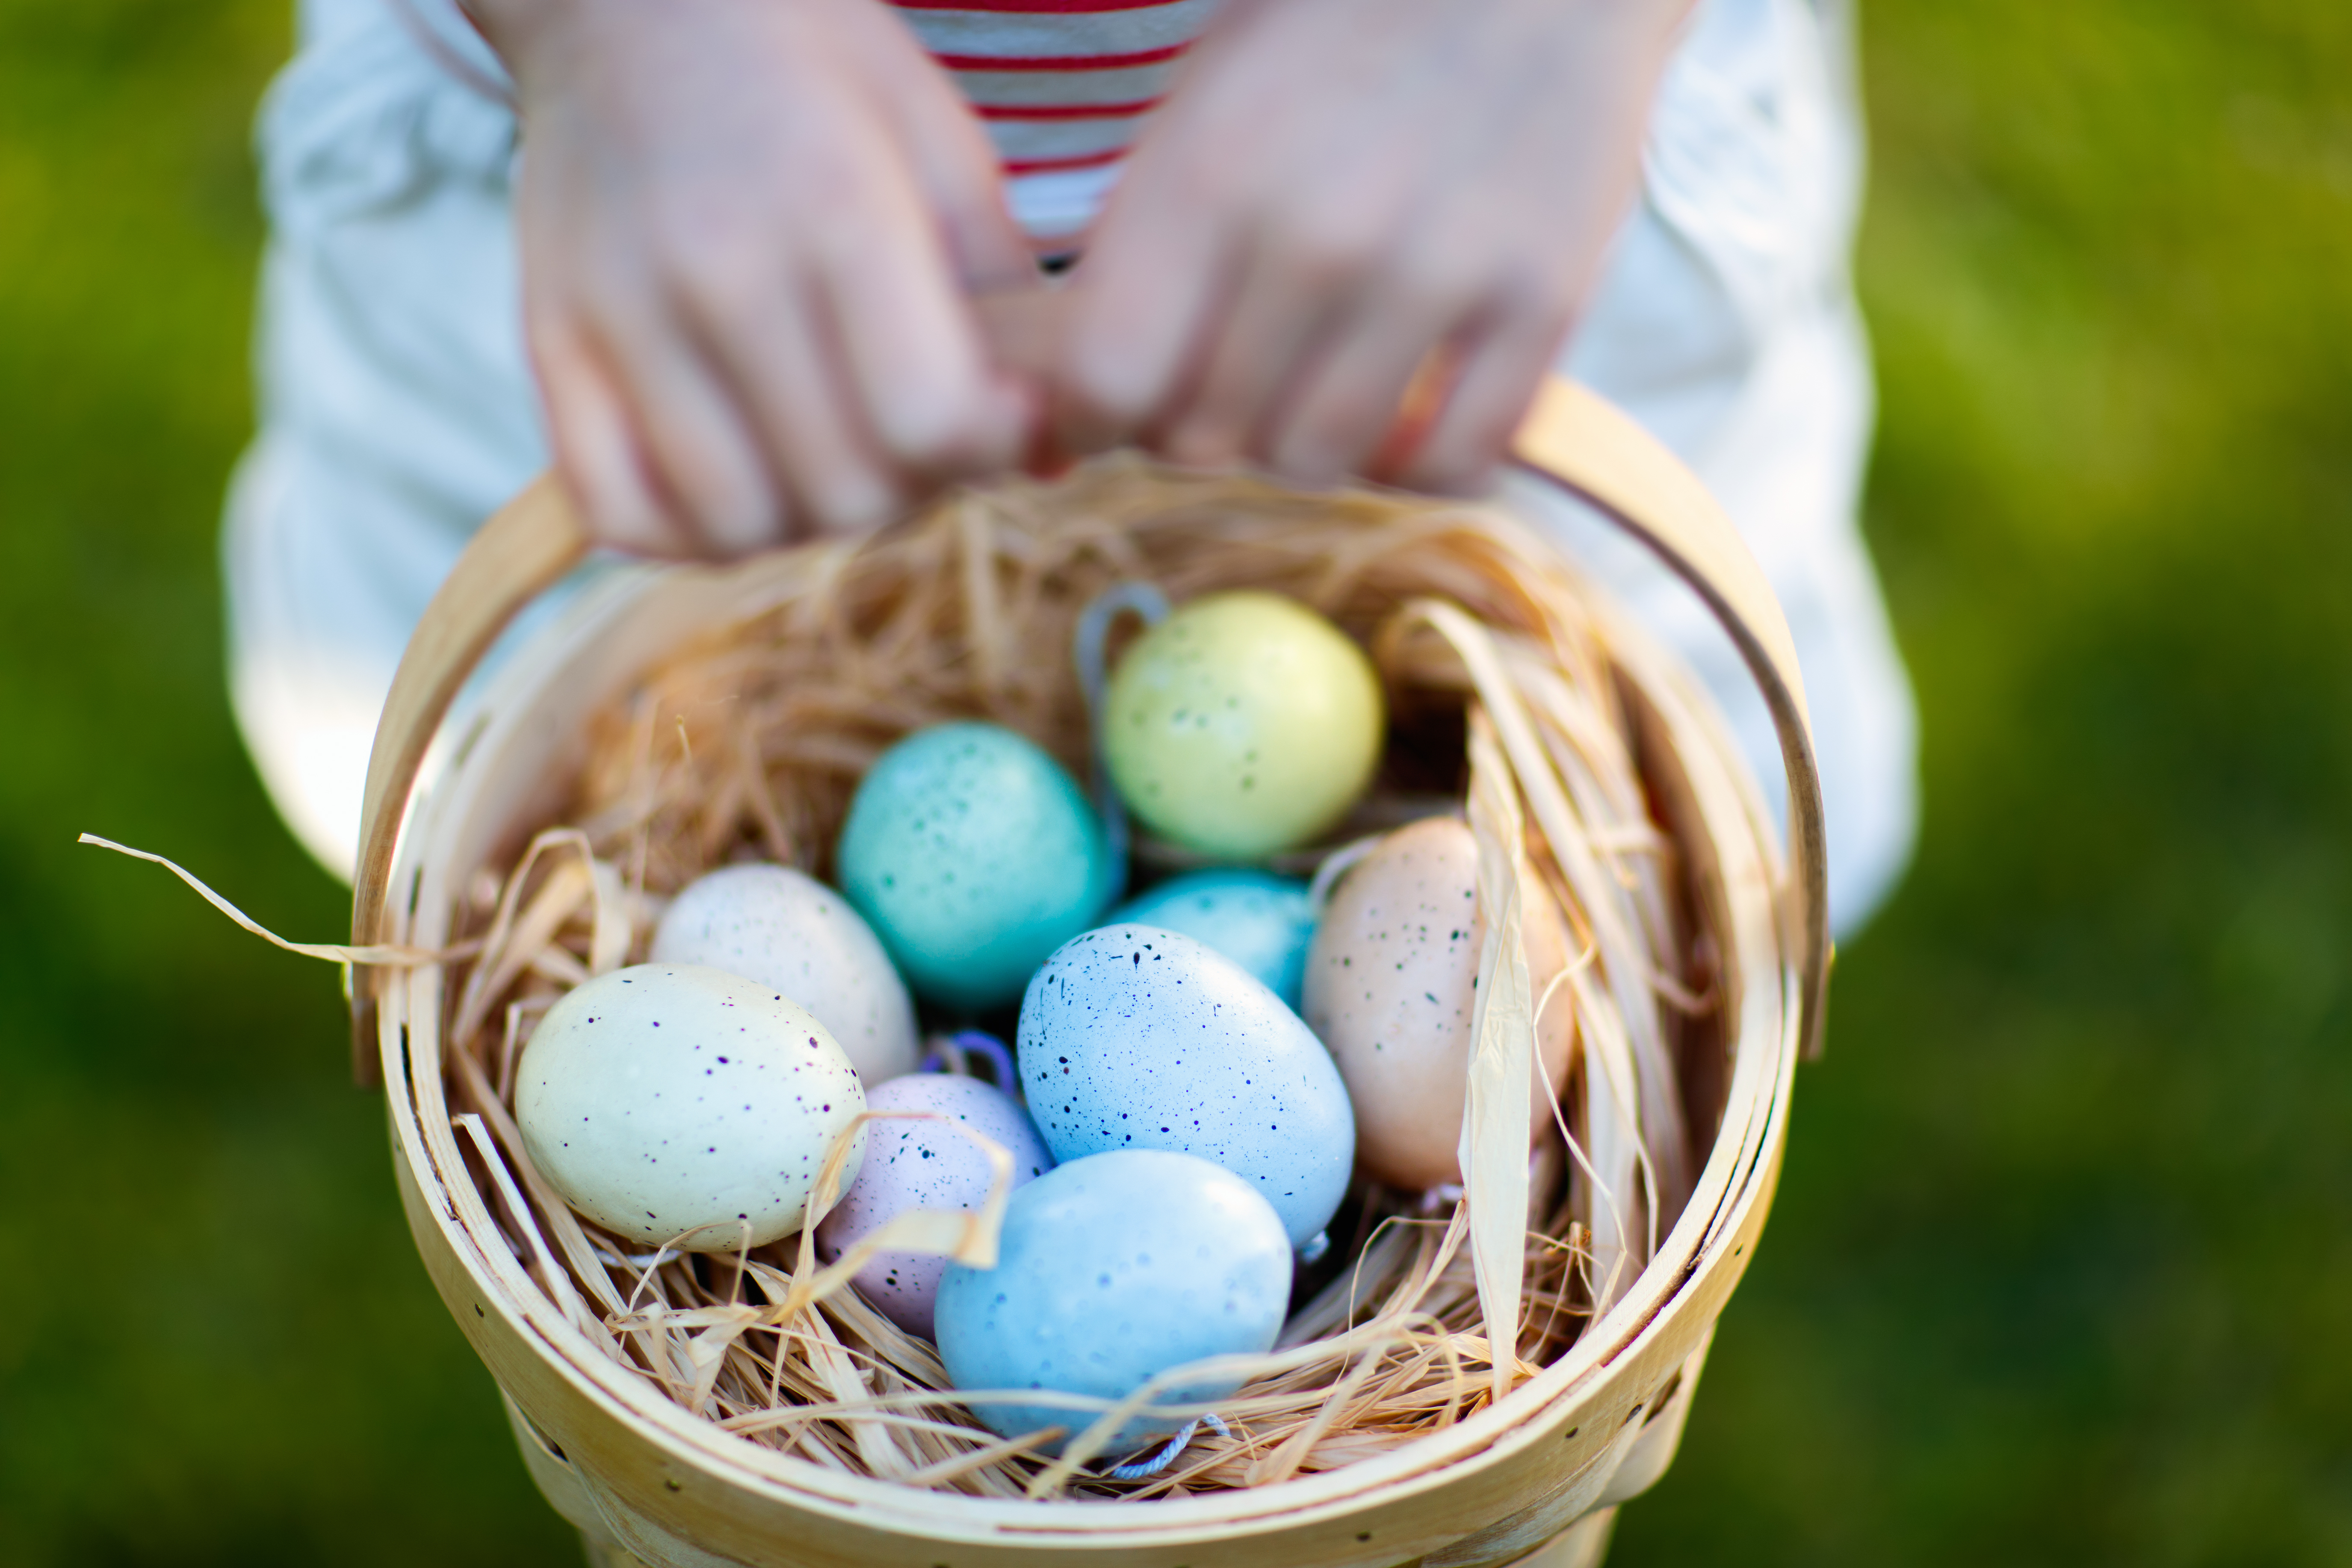 Now Adults Can Participate in the Annual Easter Egg Hunt With This Workout